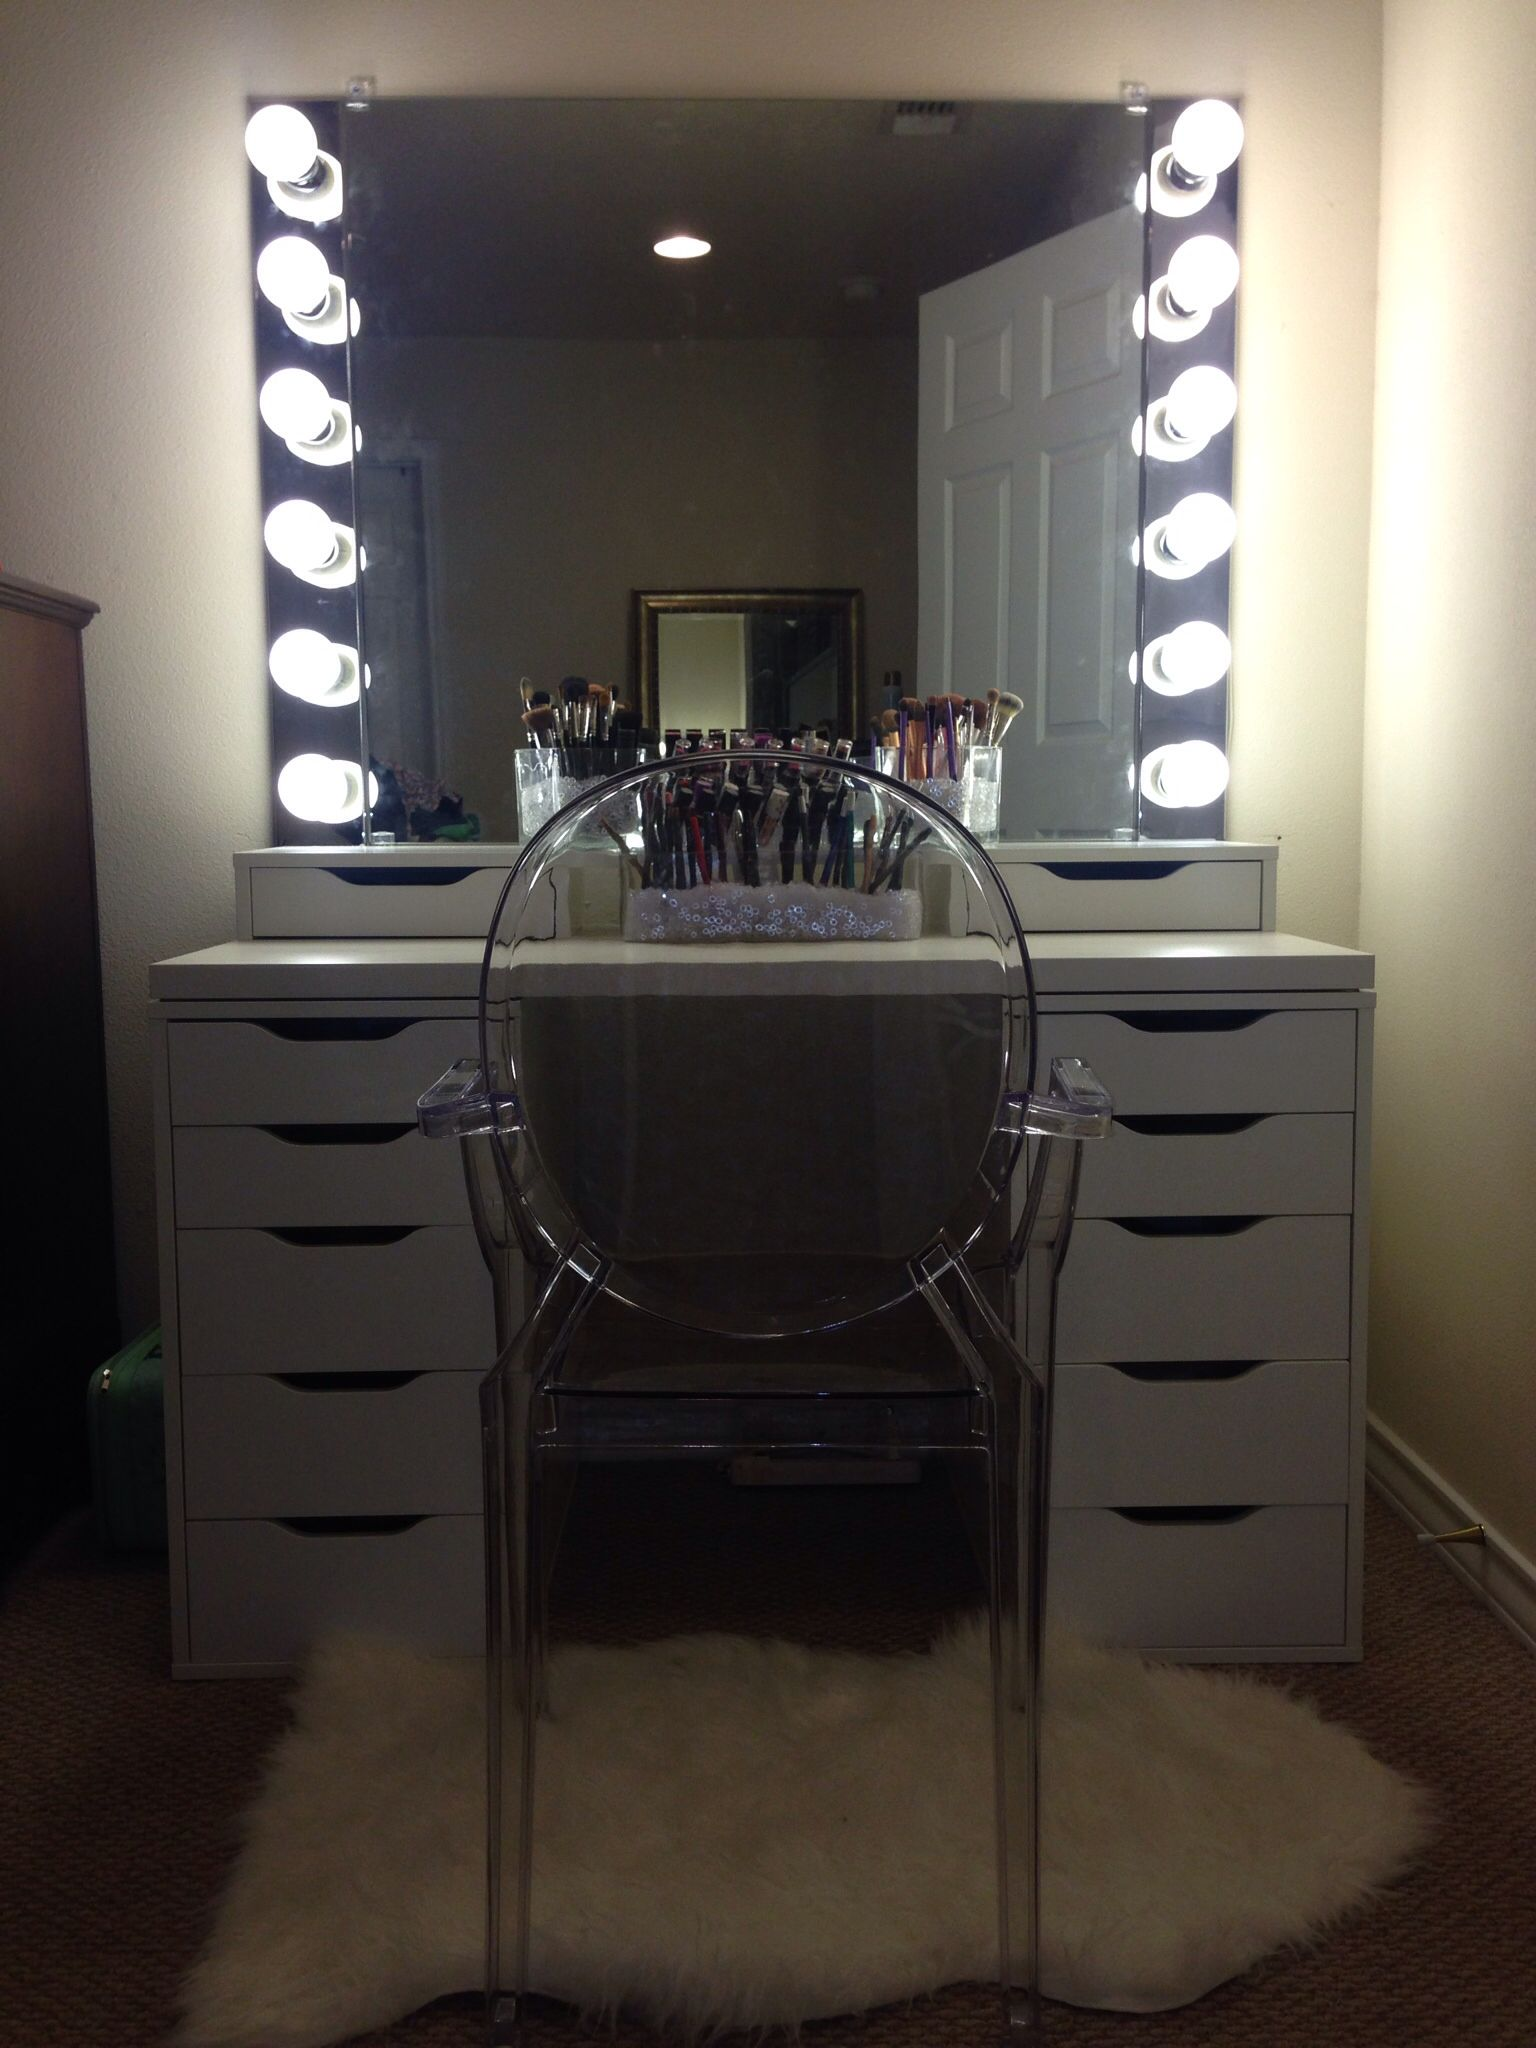 DIY iKEA Vanity with lights! Beauty Pinterest Ikea vanity, Vanities and Lights